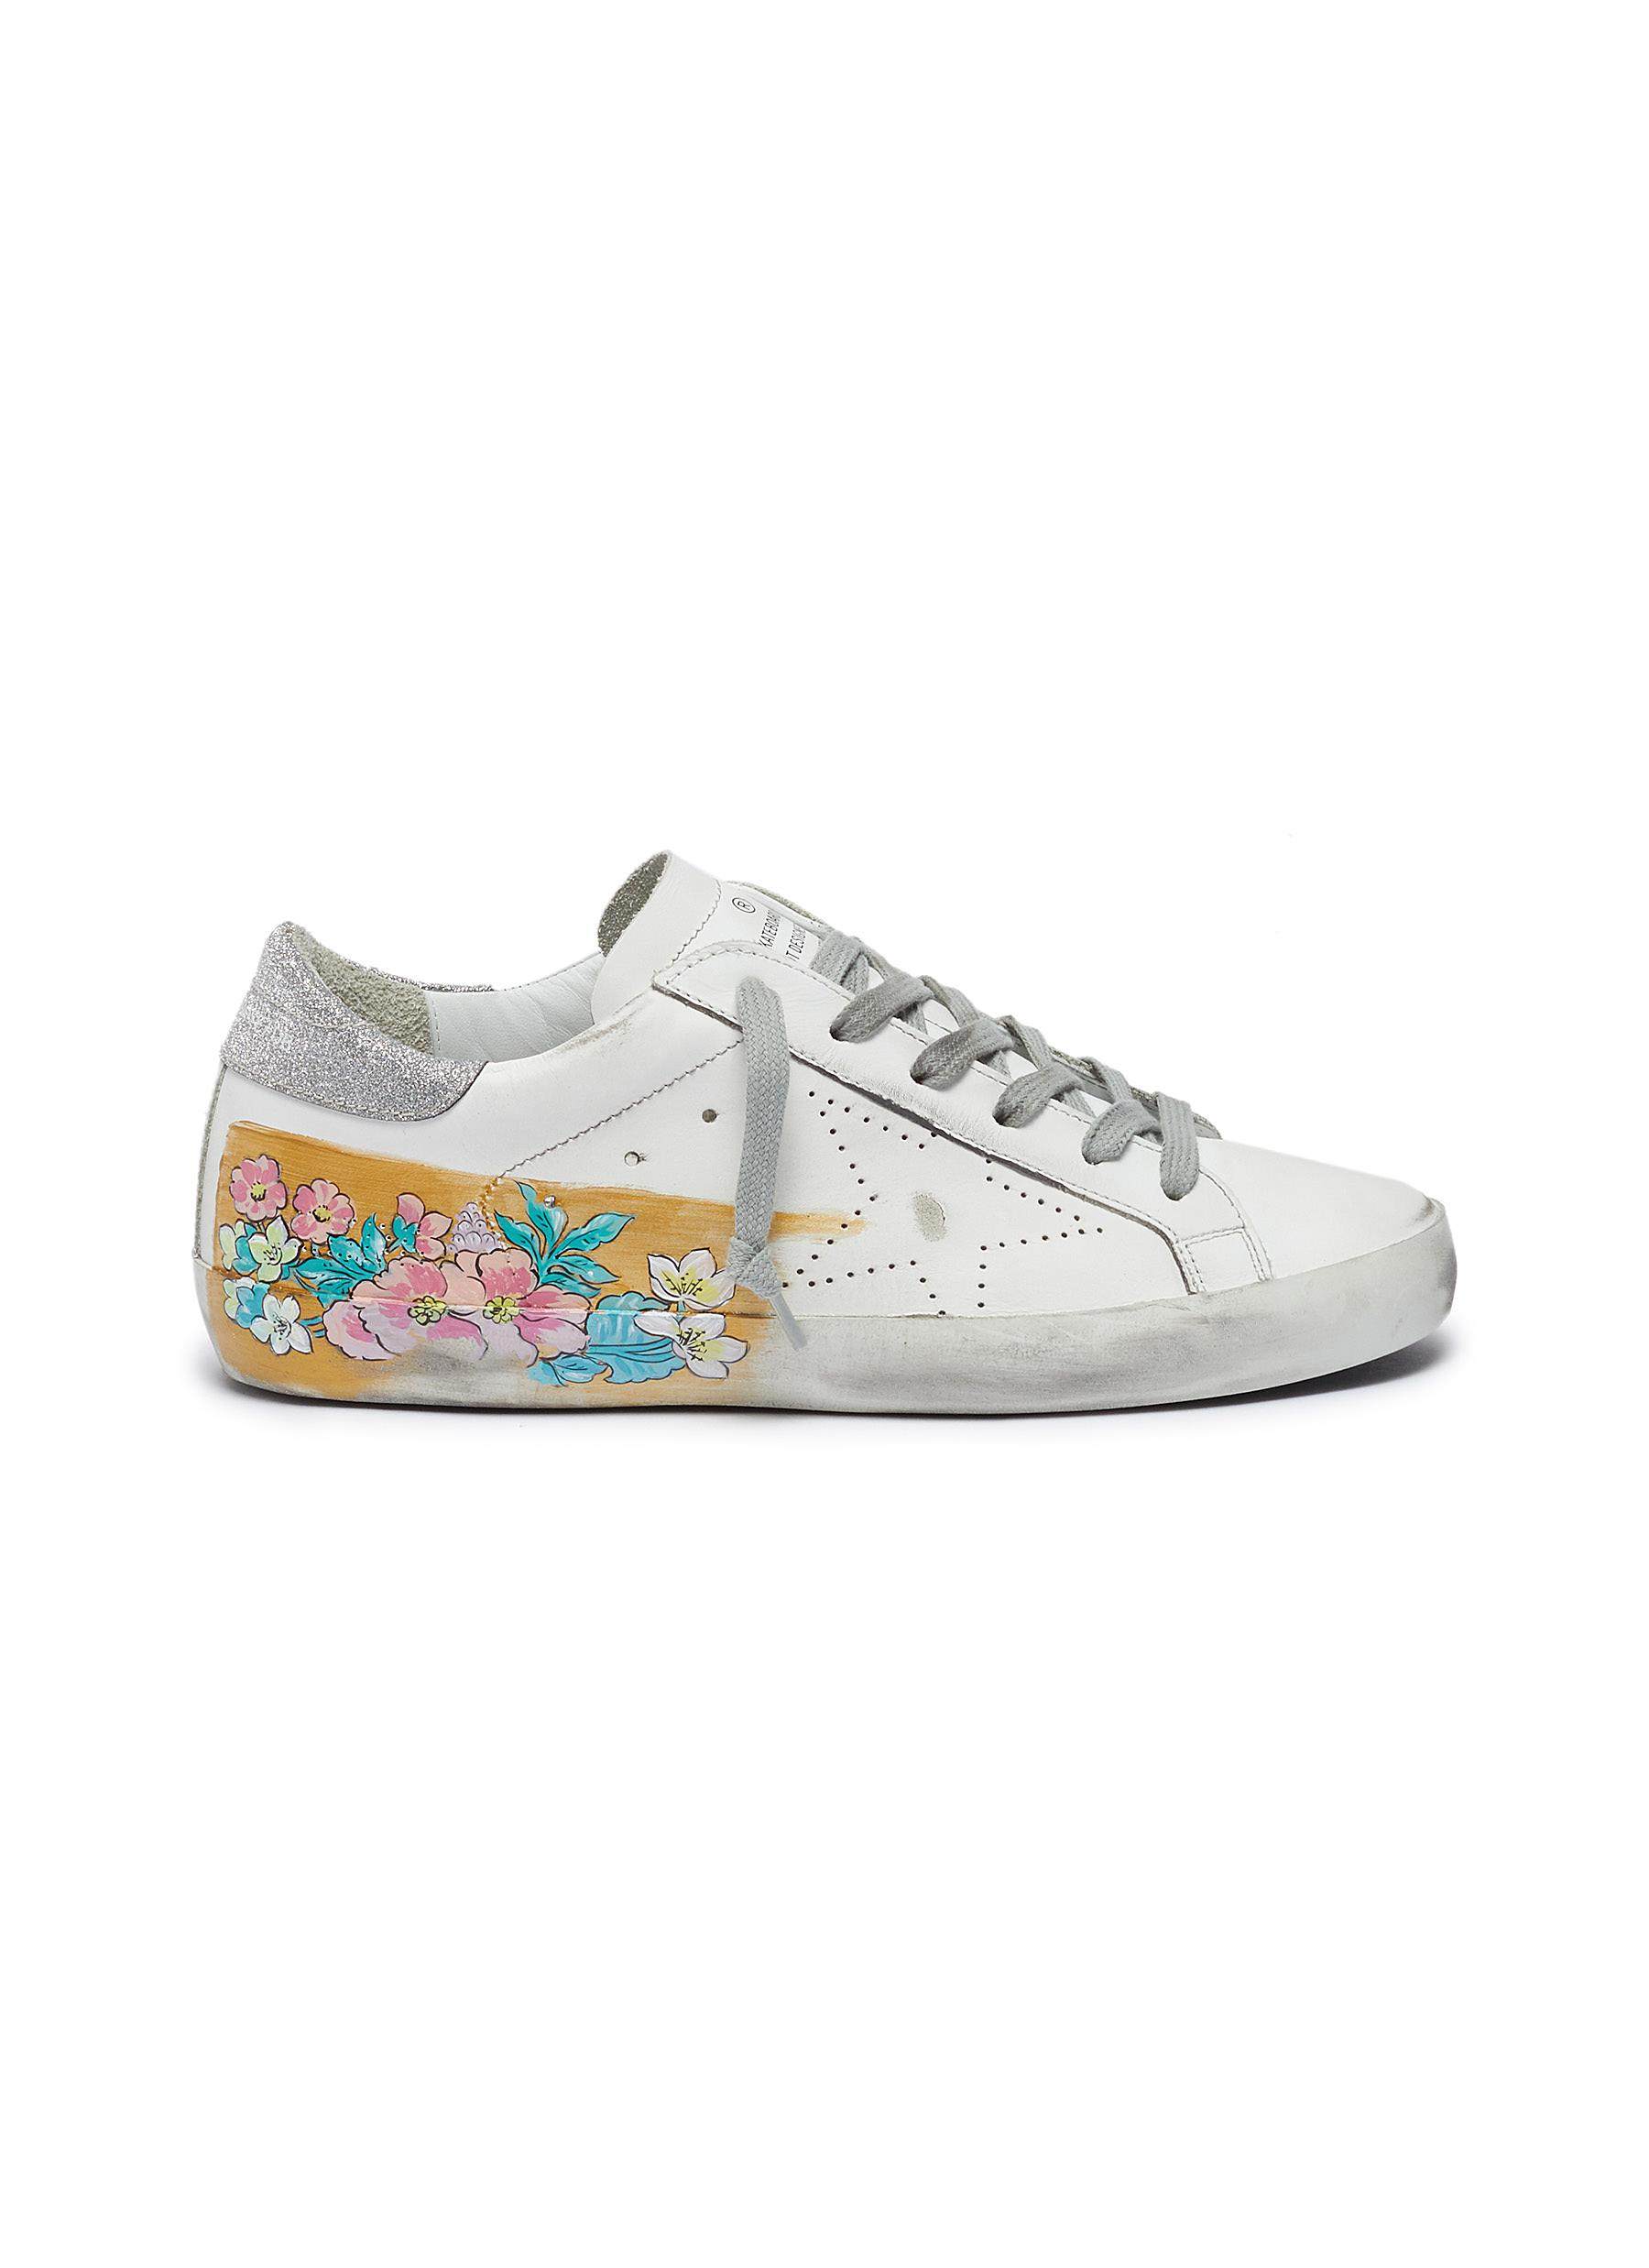 Superstar painted flower glitter panel leather sneakers by Golden Goose